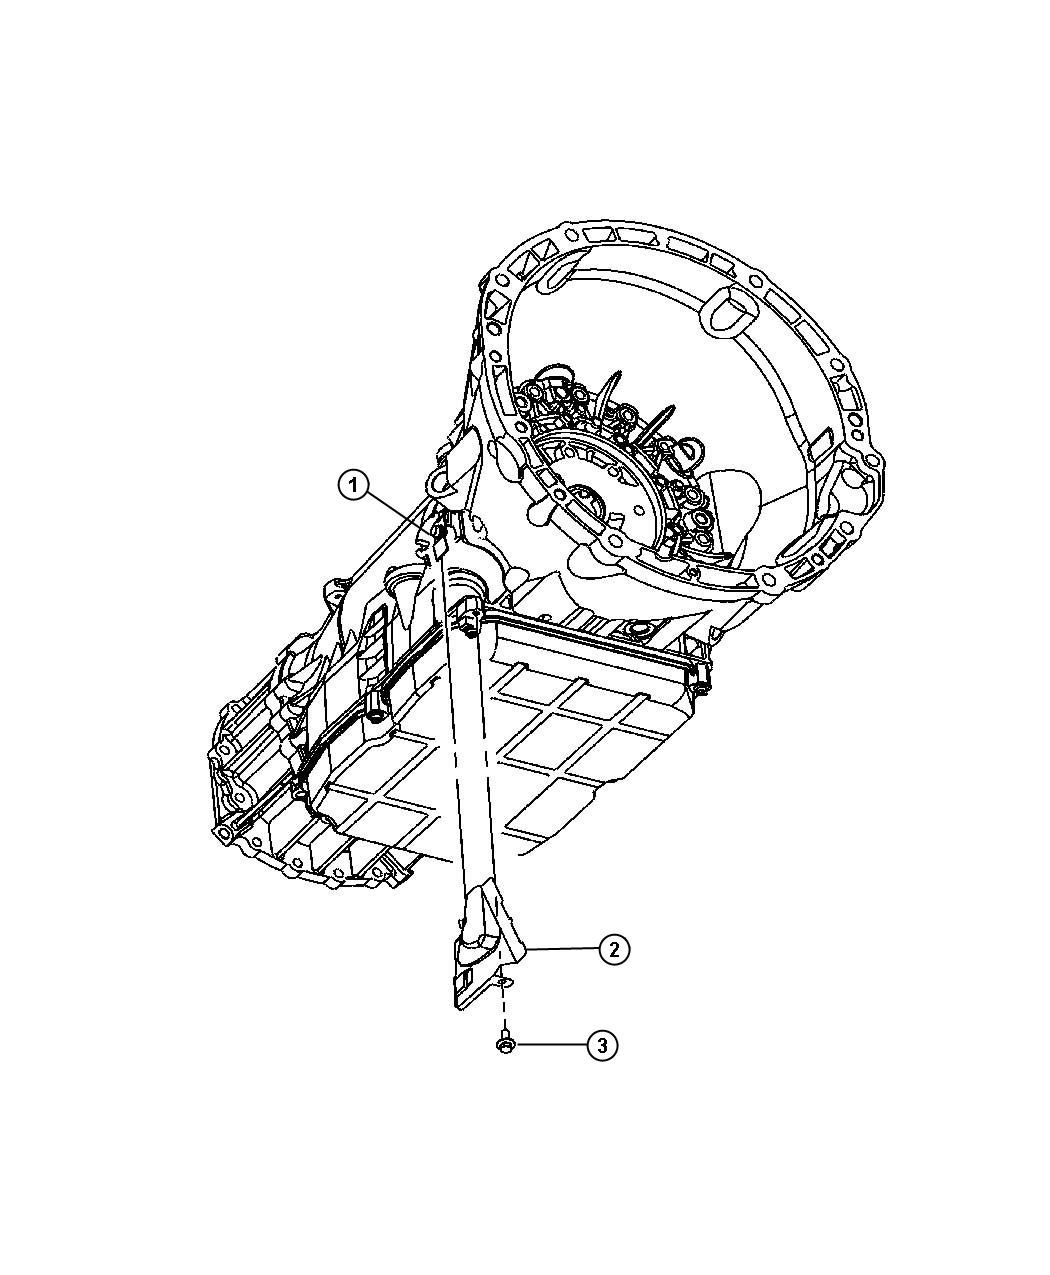 Jeep Commander Spring Harness Holding Spring